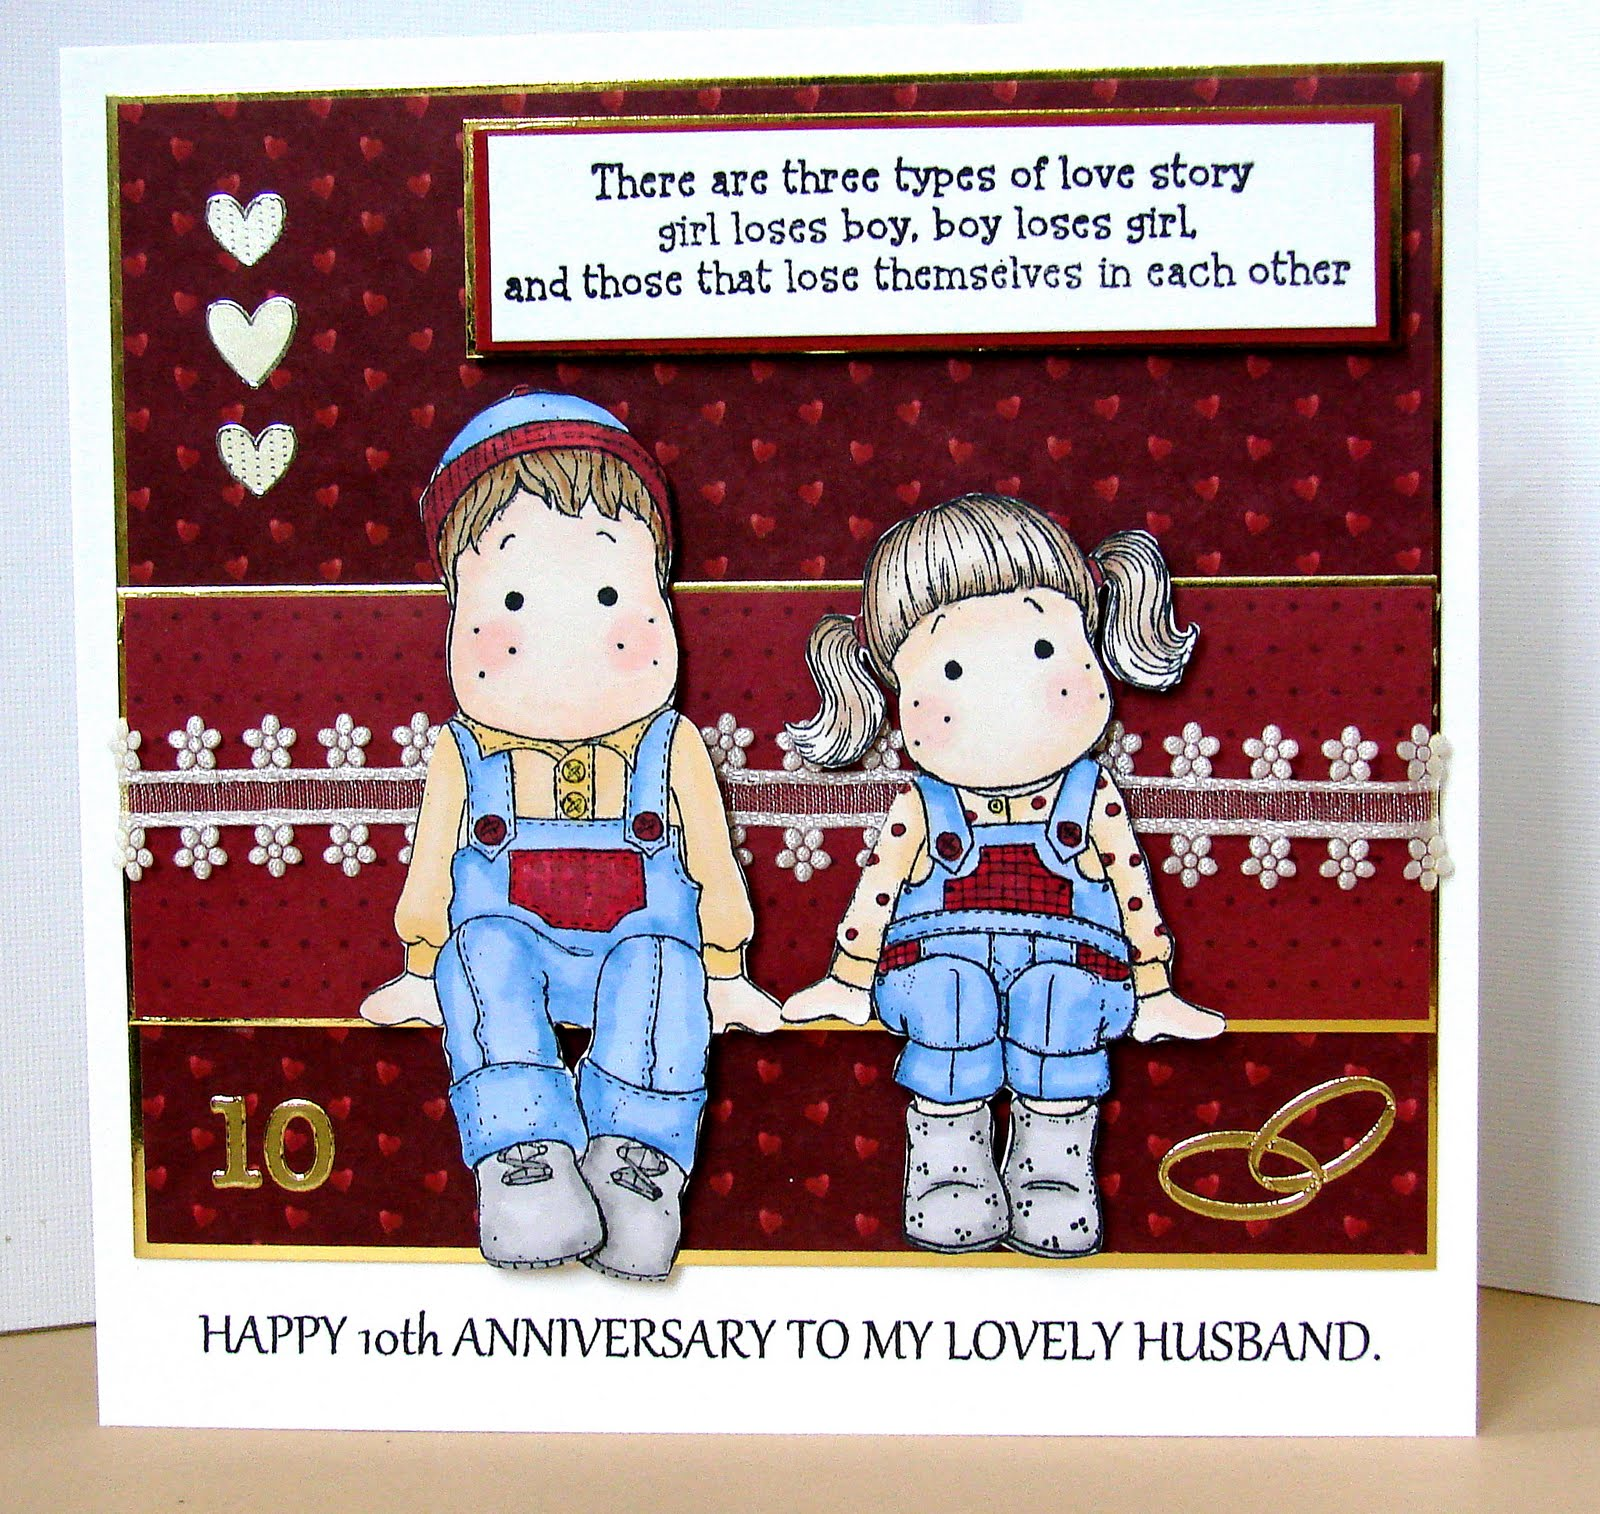 10th Wedding Anniversary Clip Art It's our 10th wedding